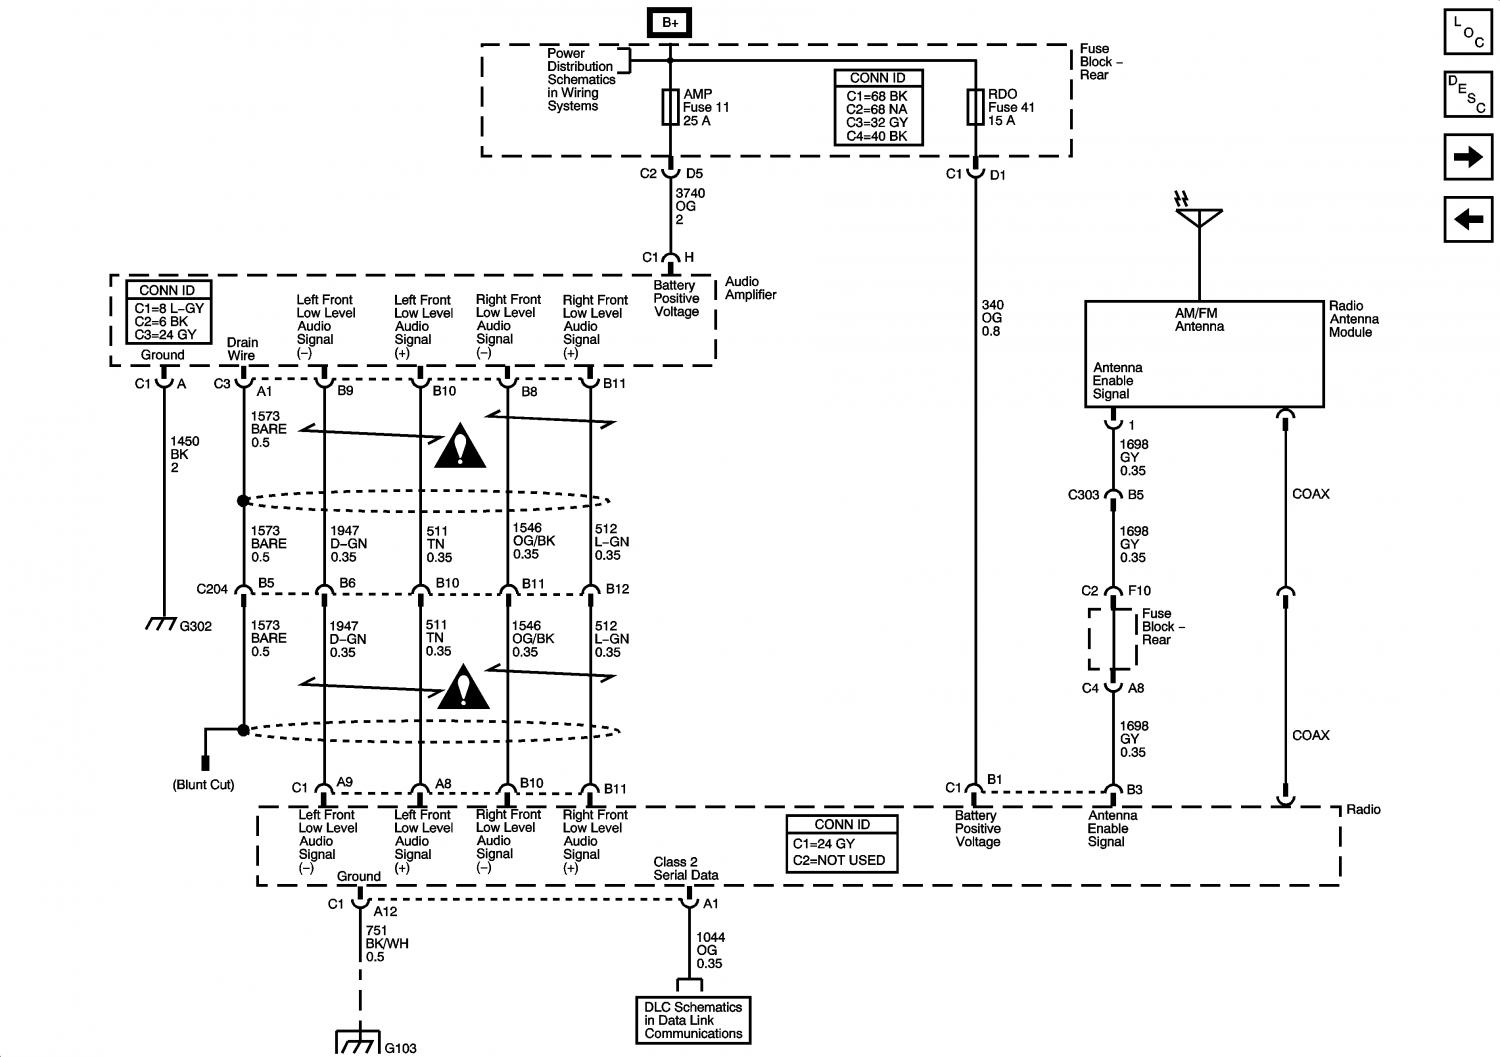 2004 Chevy Silverado Radio Wiring Diagram. Chevy. Wiring